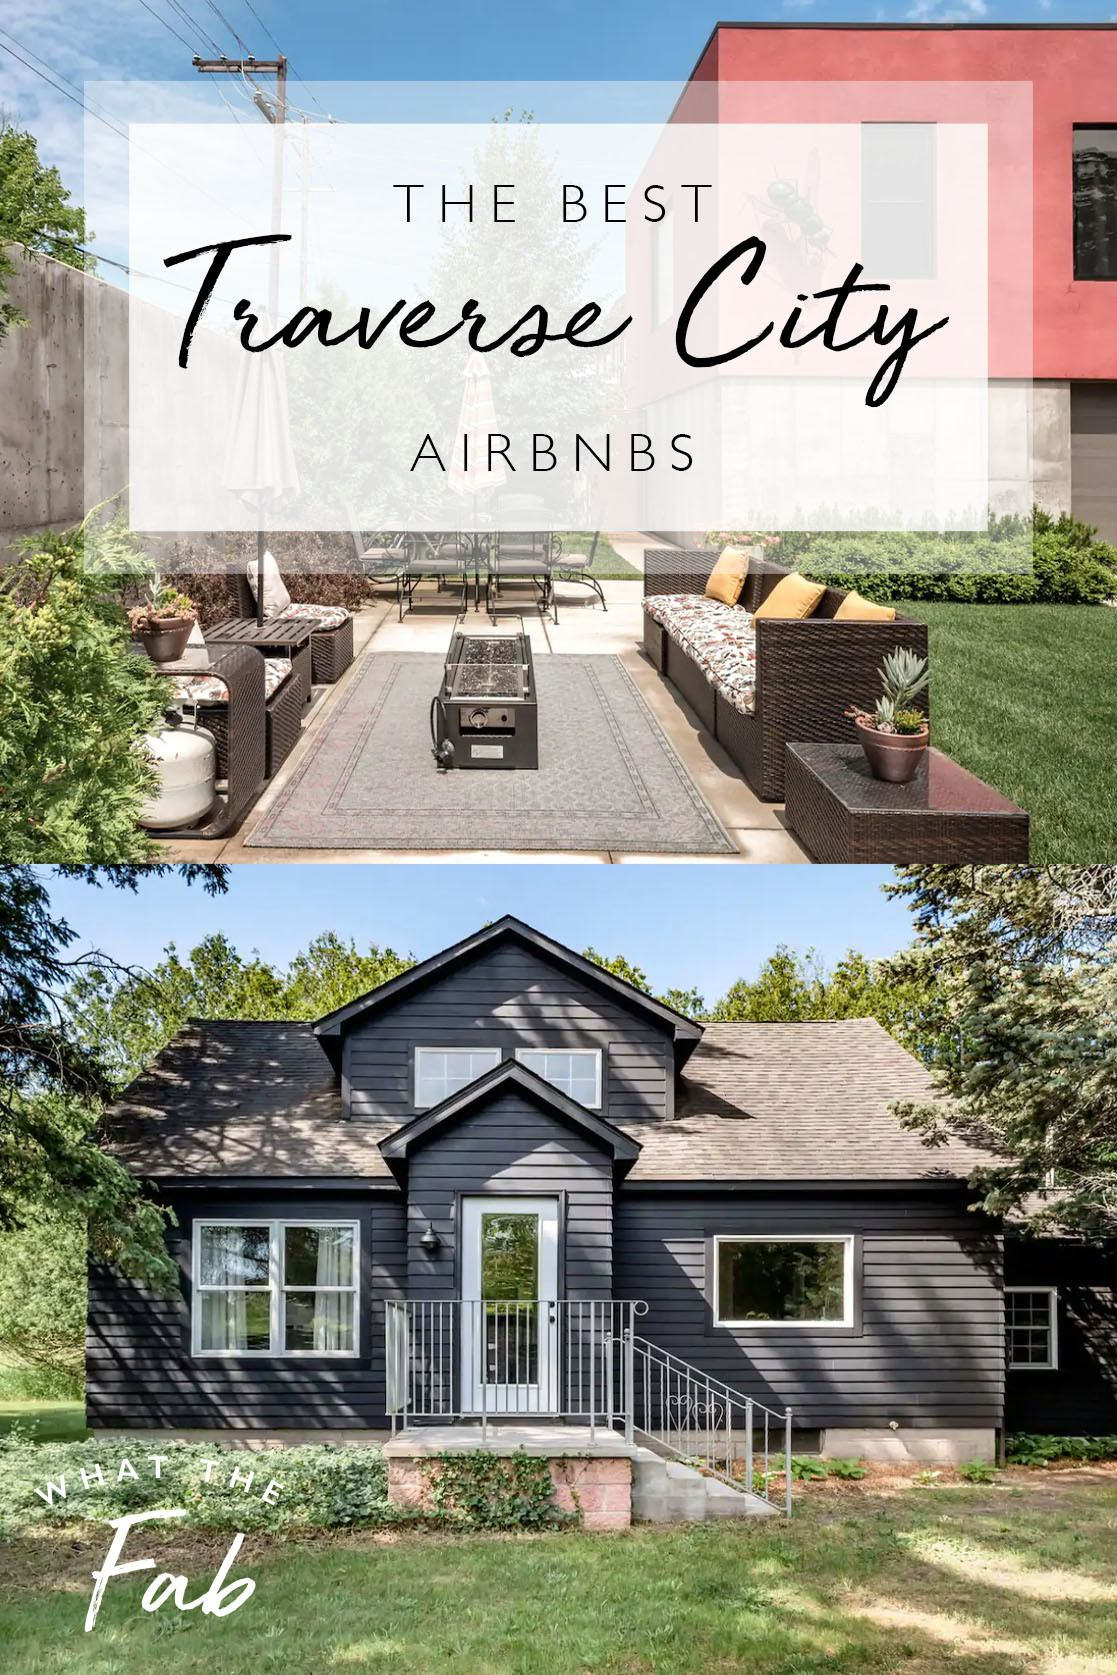 The best Traverse City Airbnbs, by travel blogger What The Fab